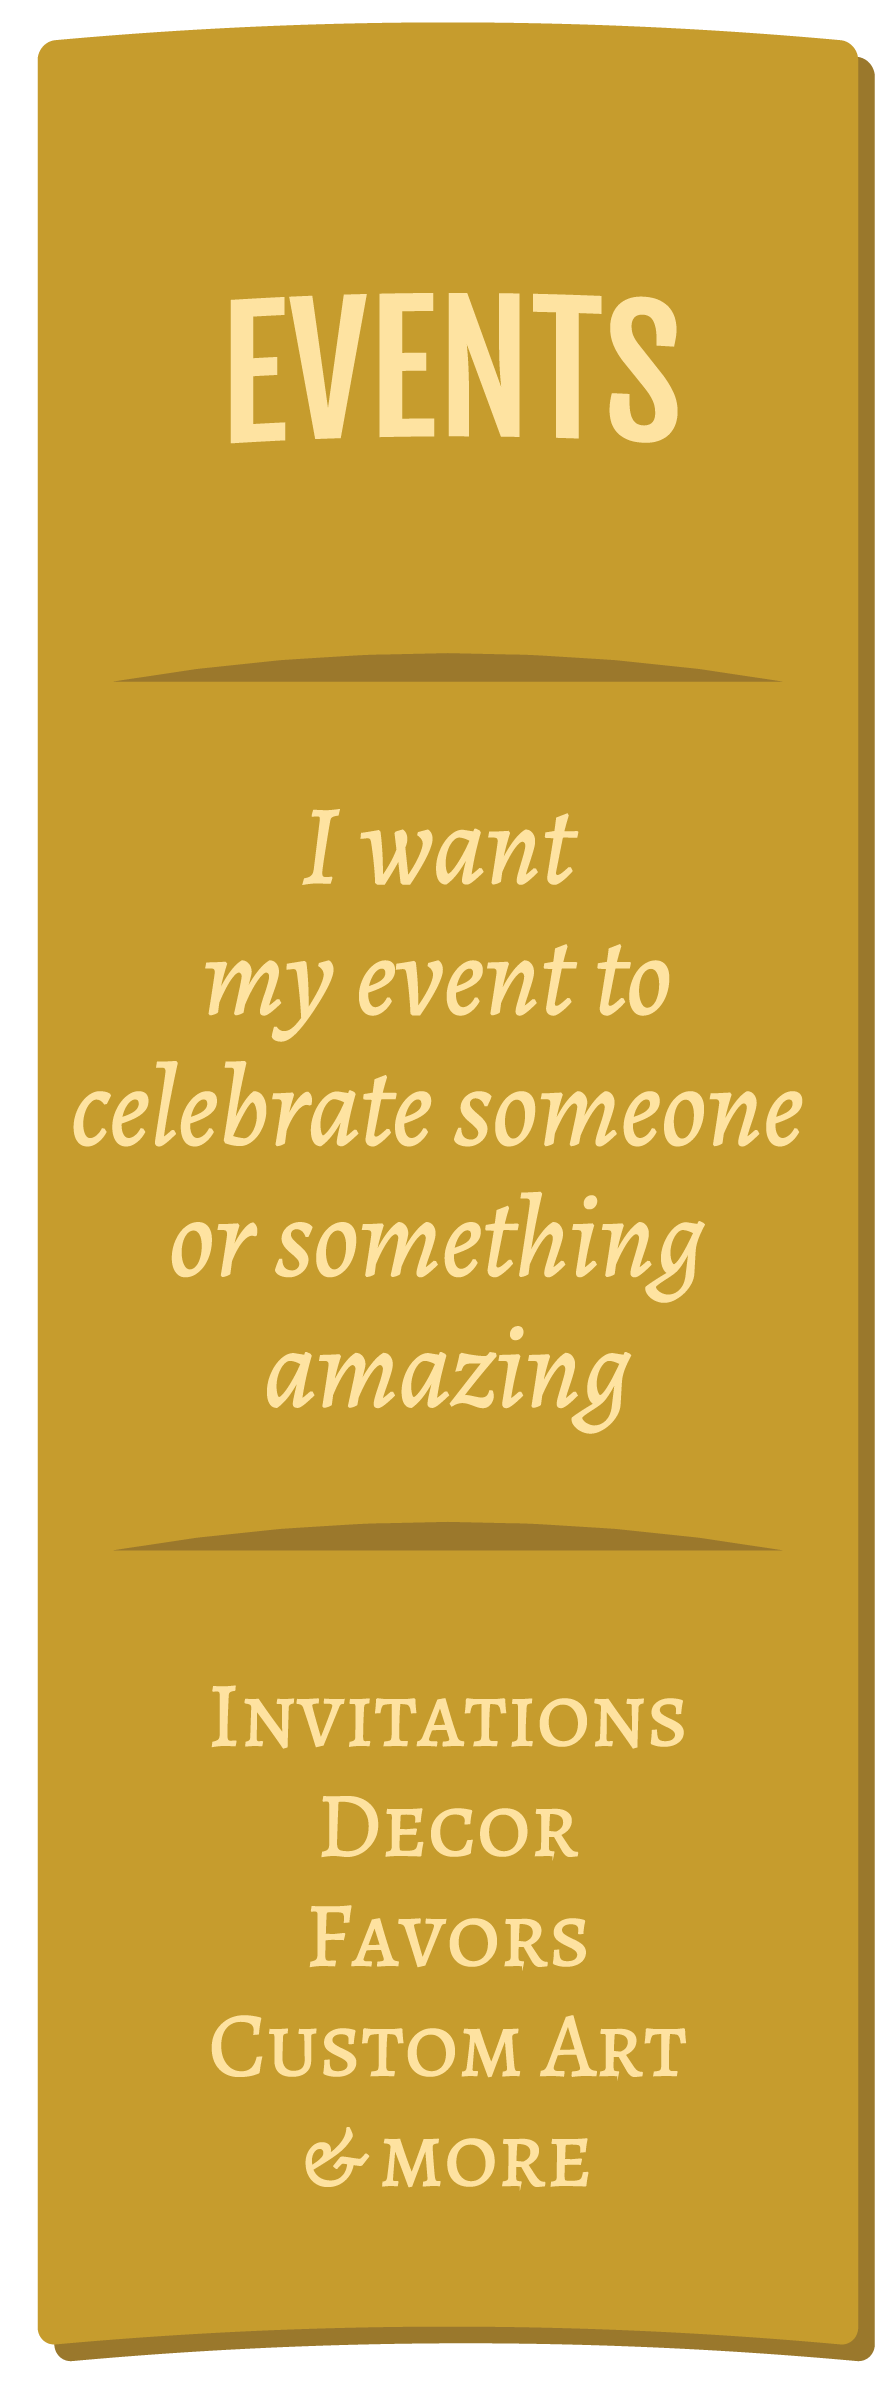 Events | I want my even to celebrate someone or something amazing | Invitations, Decor, Favors, Special Gifts and more | Greatest Story Events